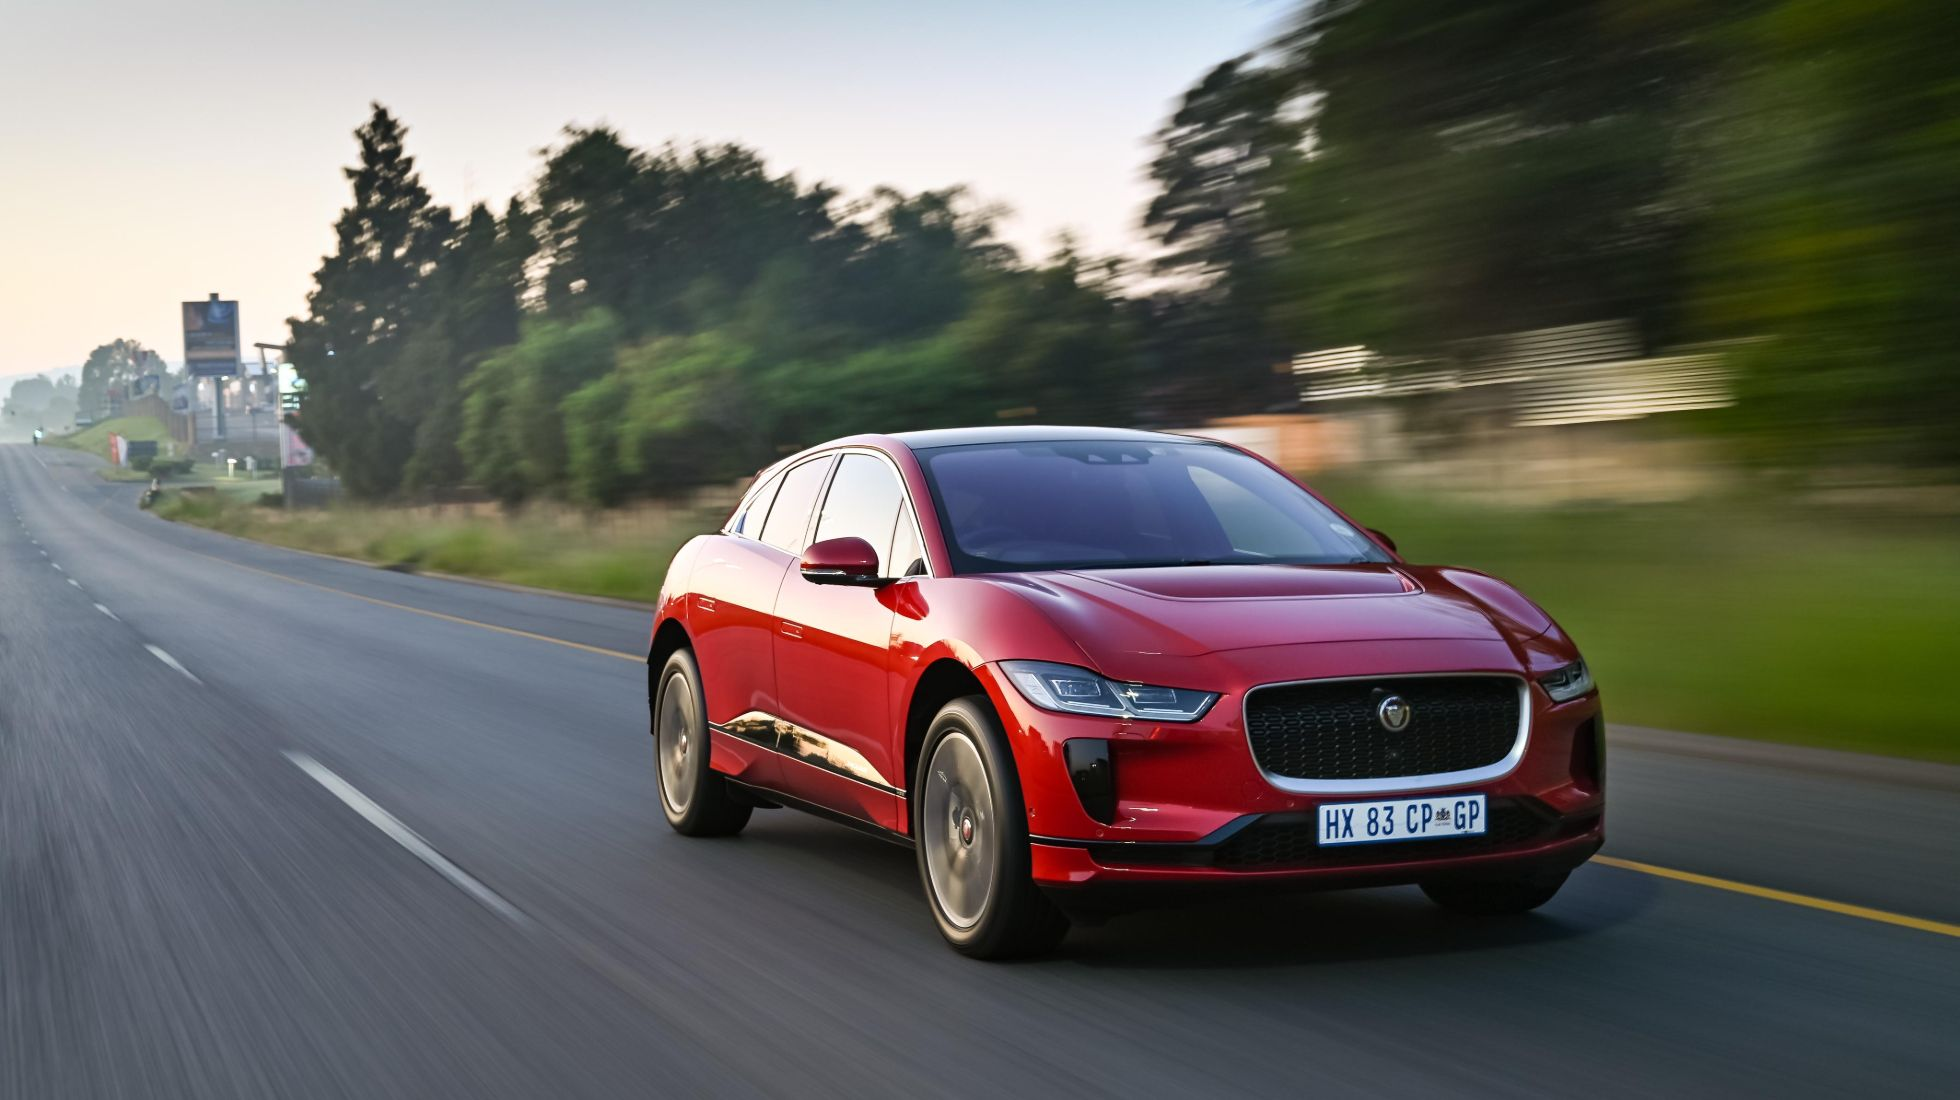 Jaguar I-PACE is simply a great SUV that happens to be powered by batteries.